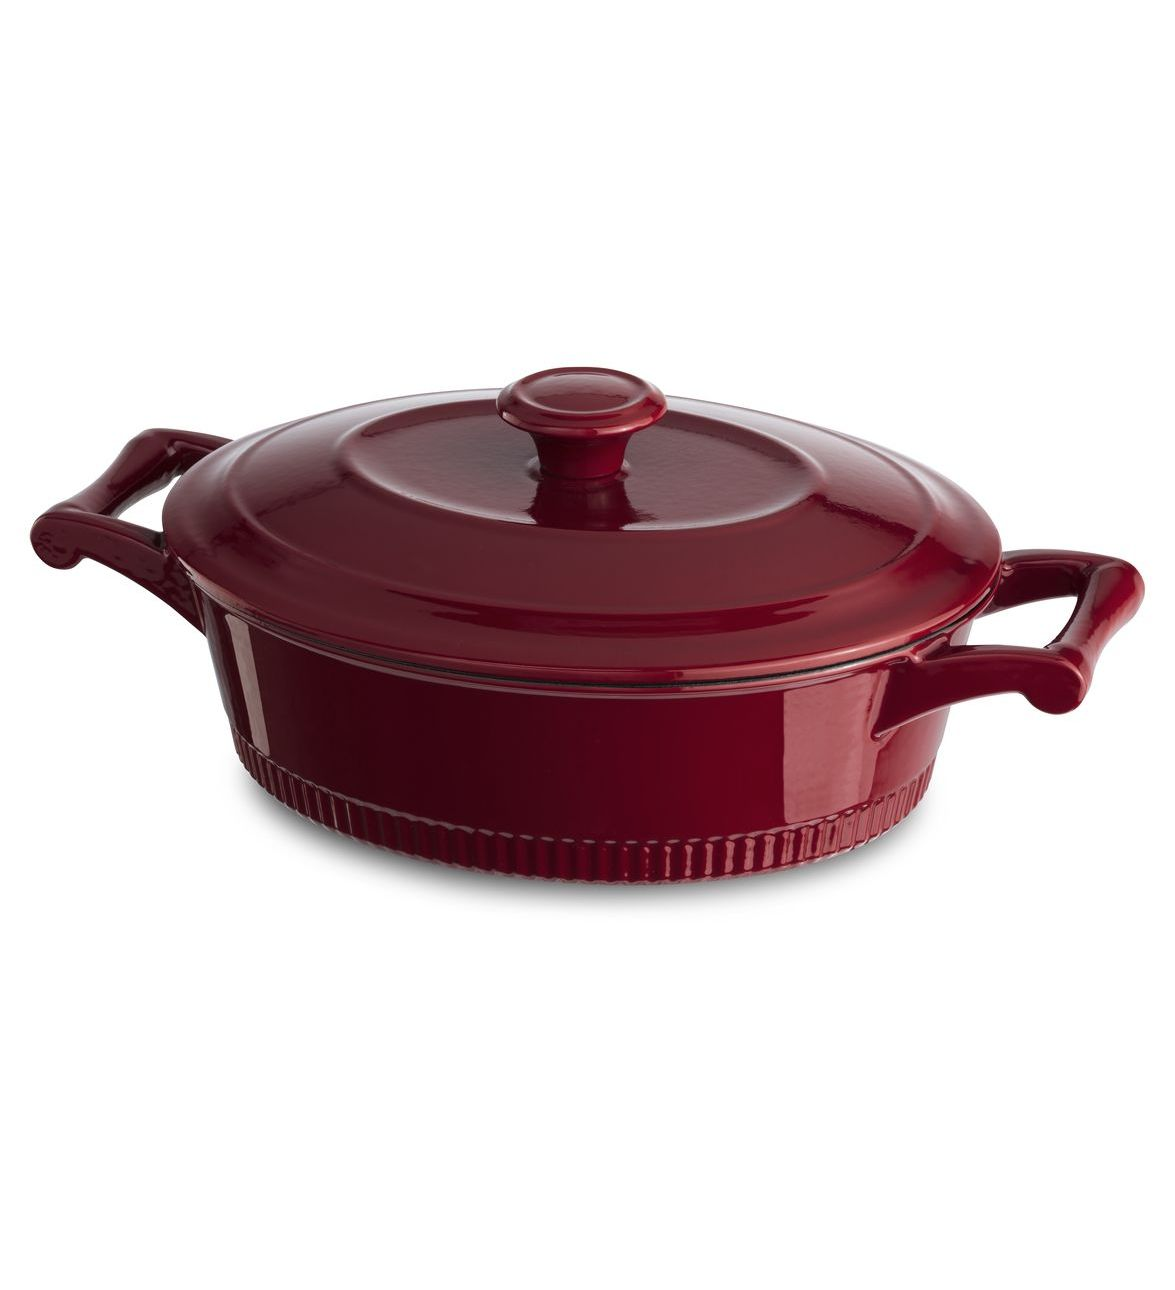 KitchenAid® Traditional Cast Iron 3-Quart Casserole